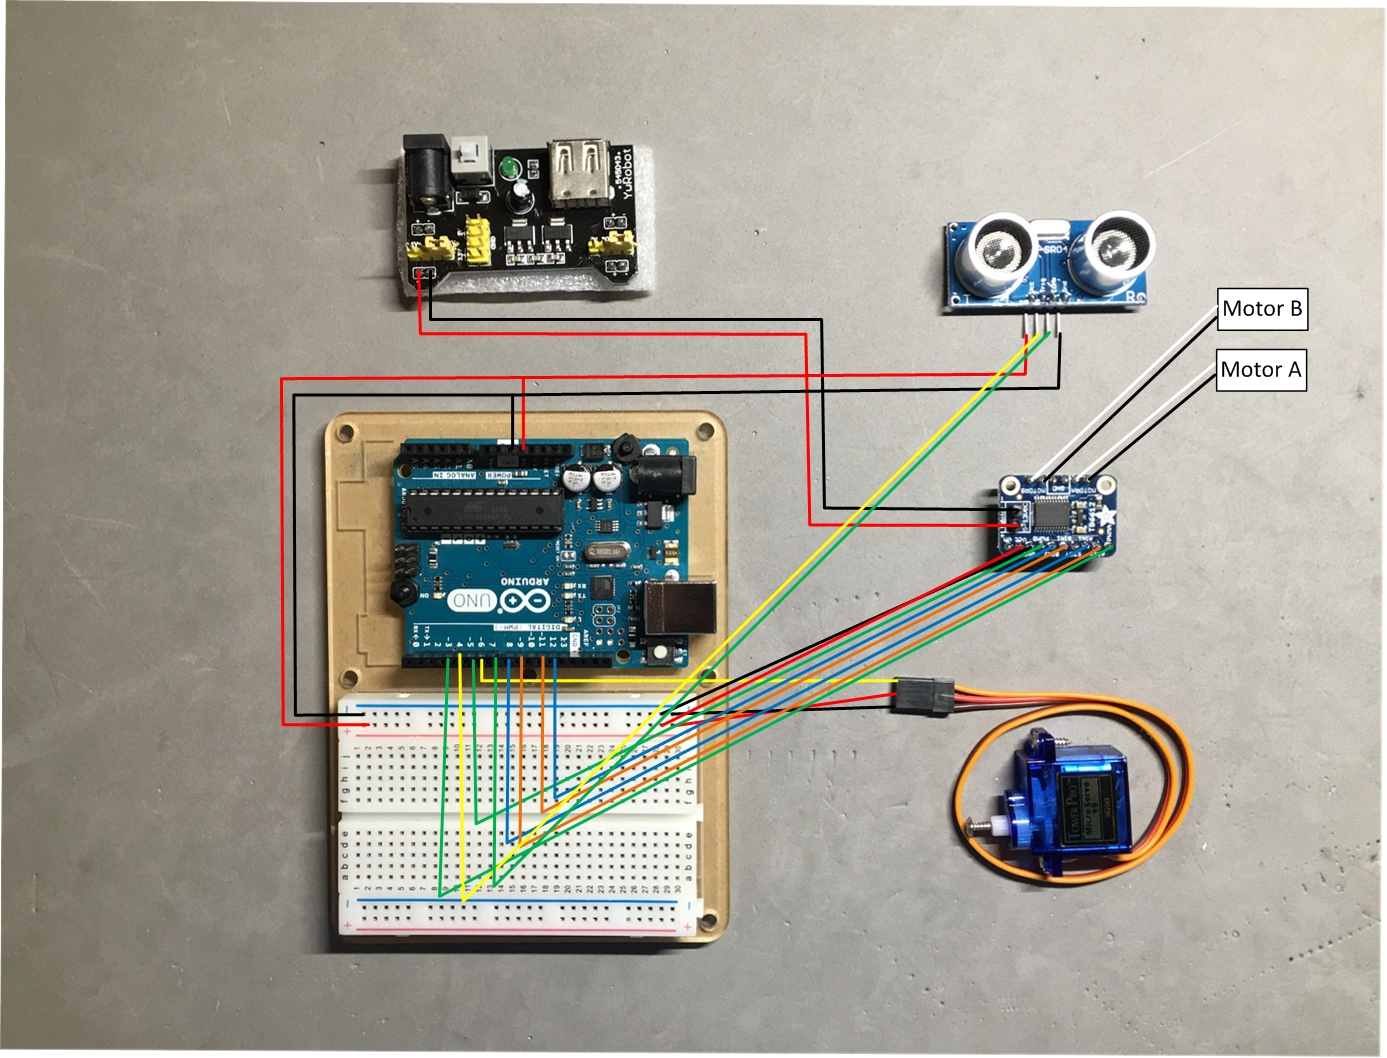 Schema Cablaggio Rj12 : Autobot using lego nxt motors and sensor hackster.io